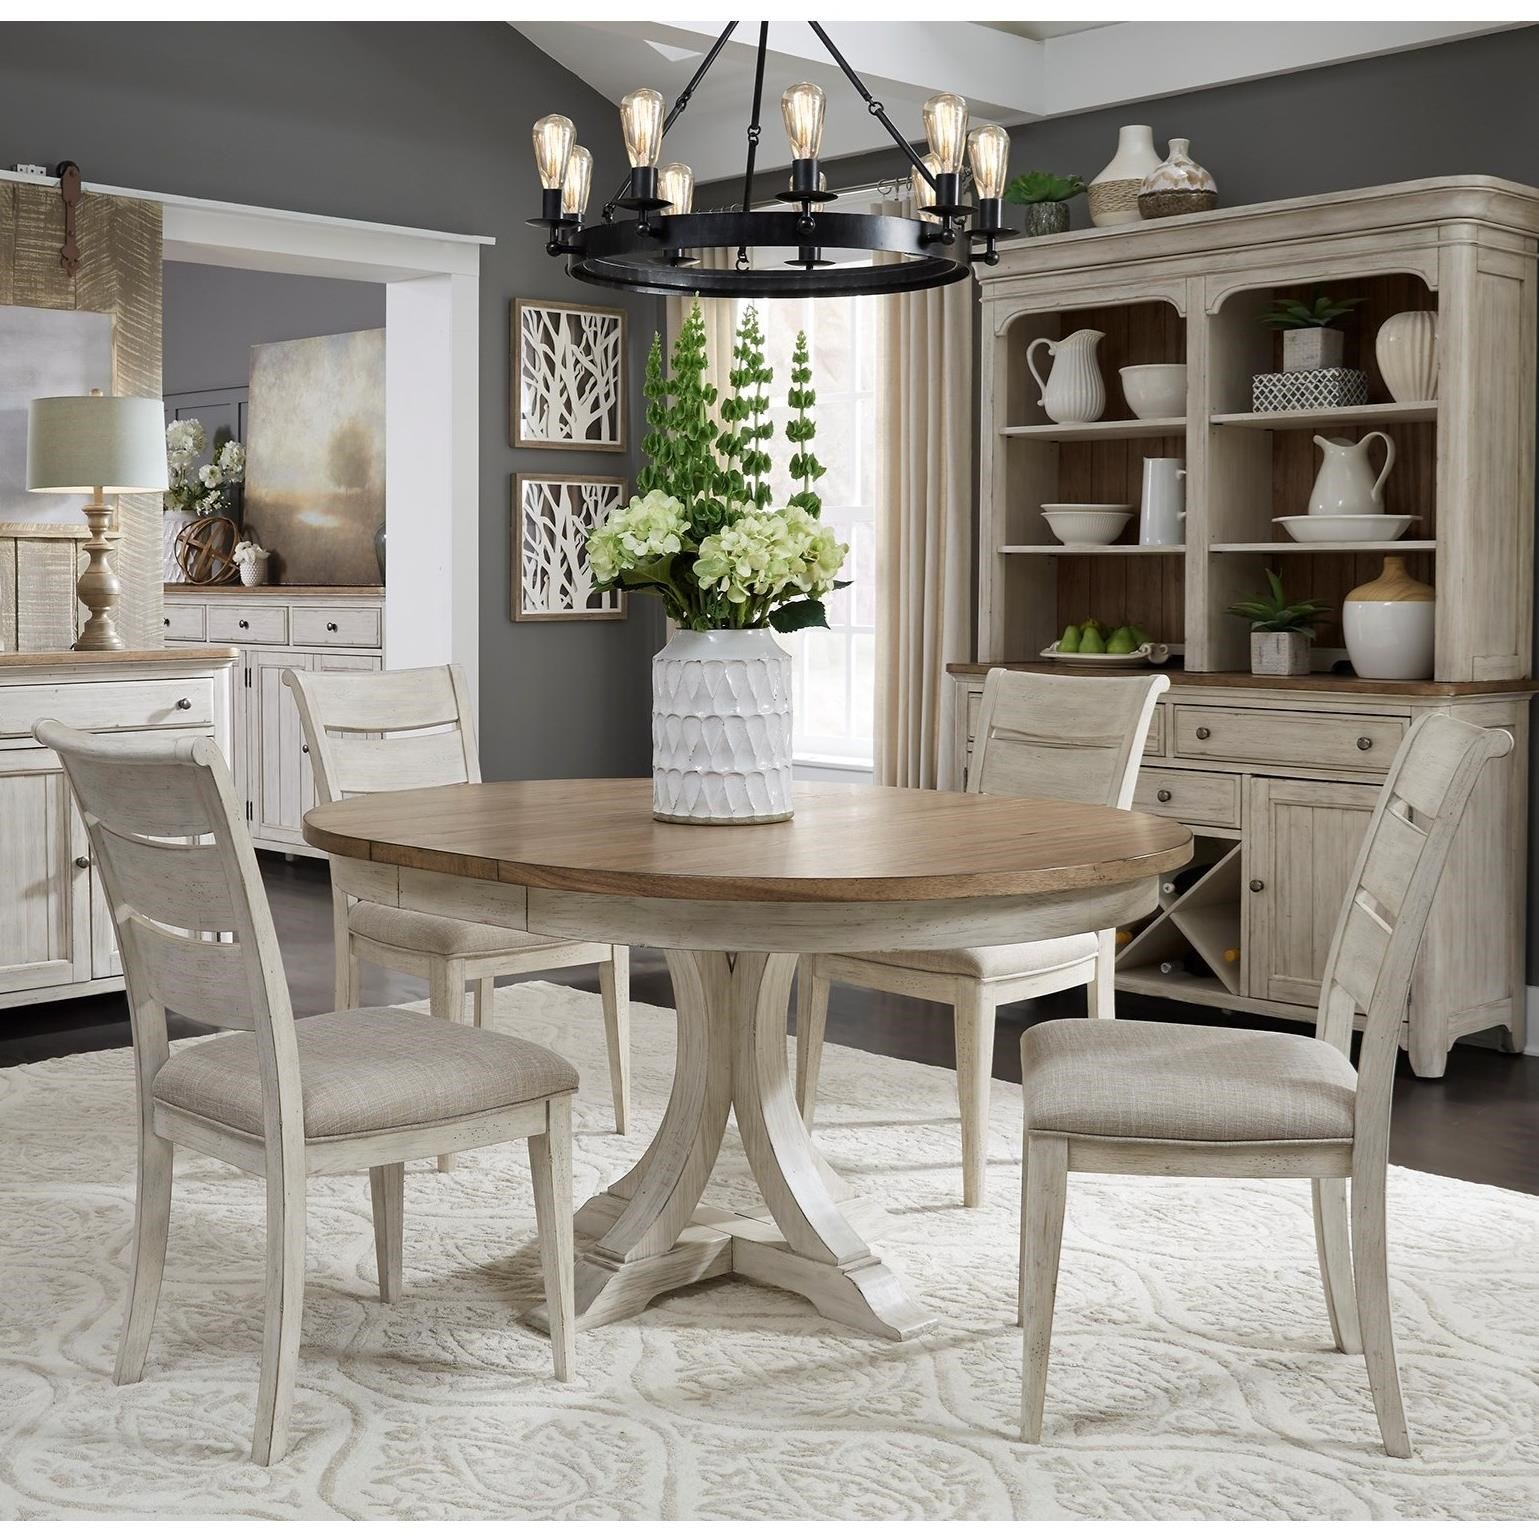 Best Place To Buy Dining Room Set: Vendor 5349 Farmhouse Reimagined 652-DR-O5PDS Relaxed